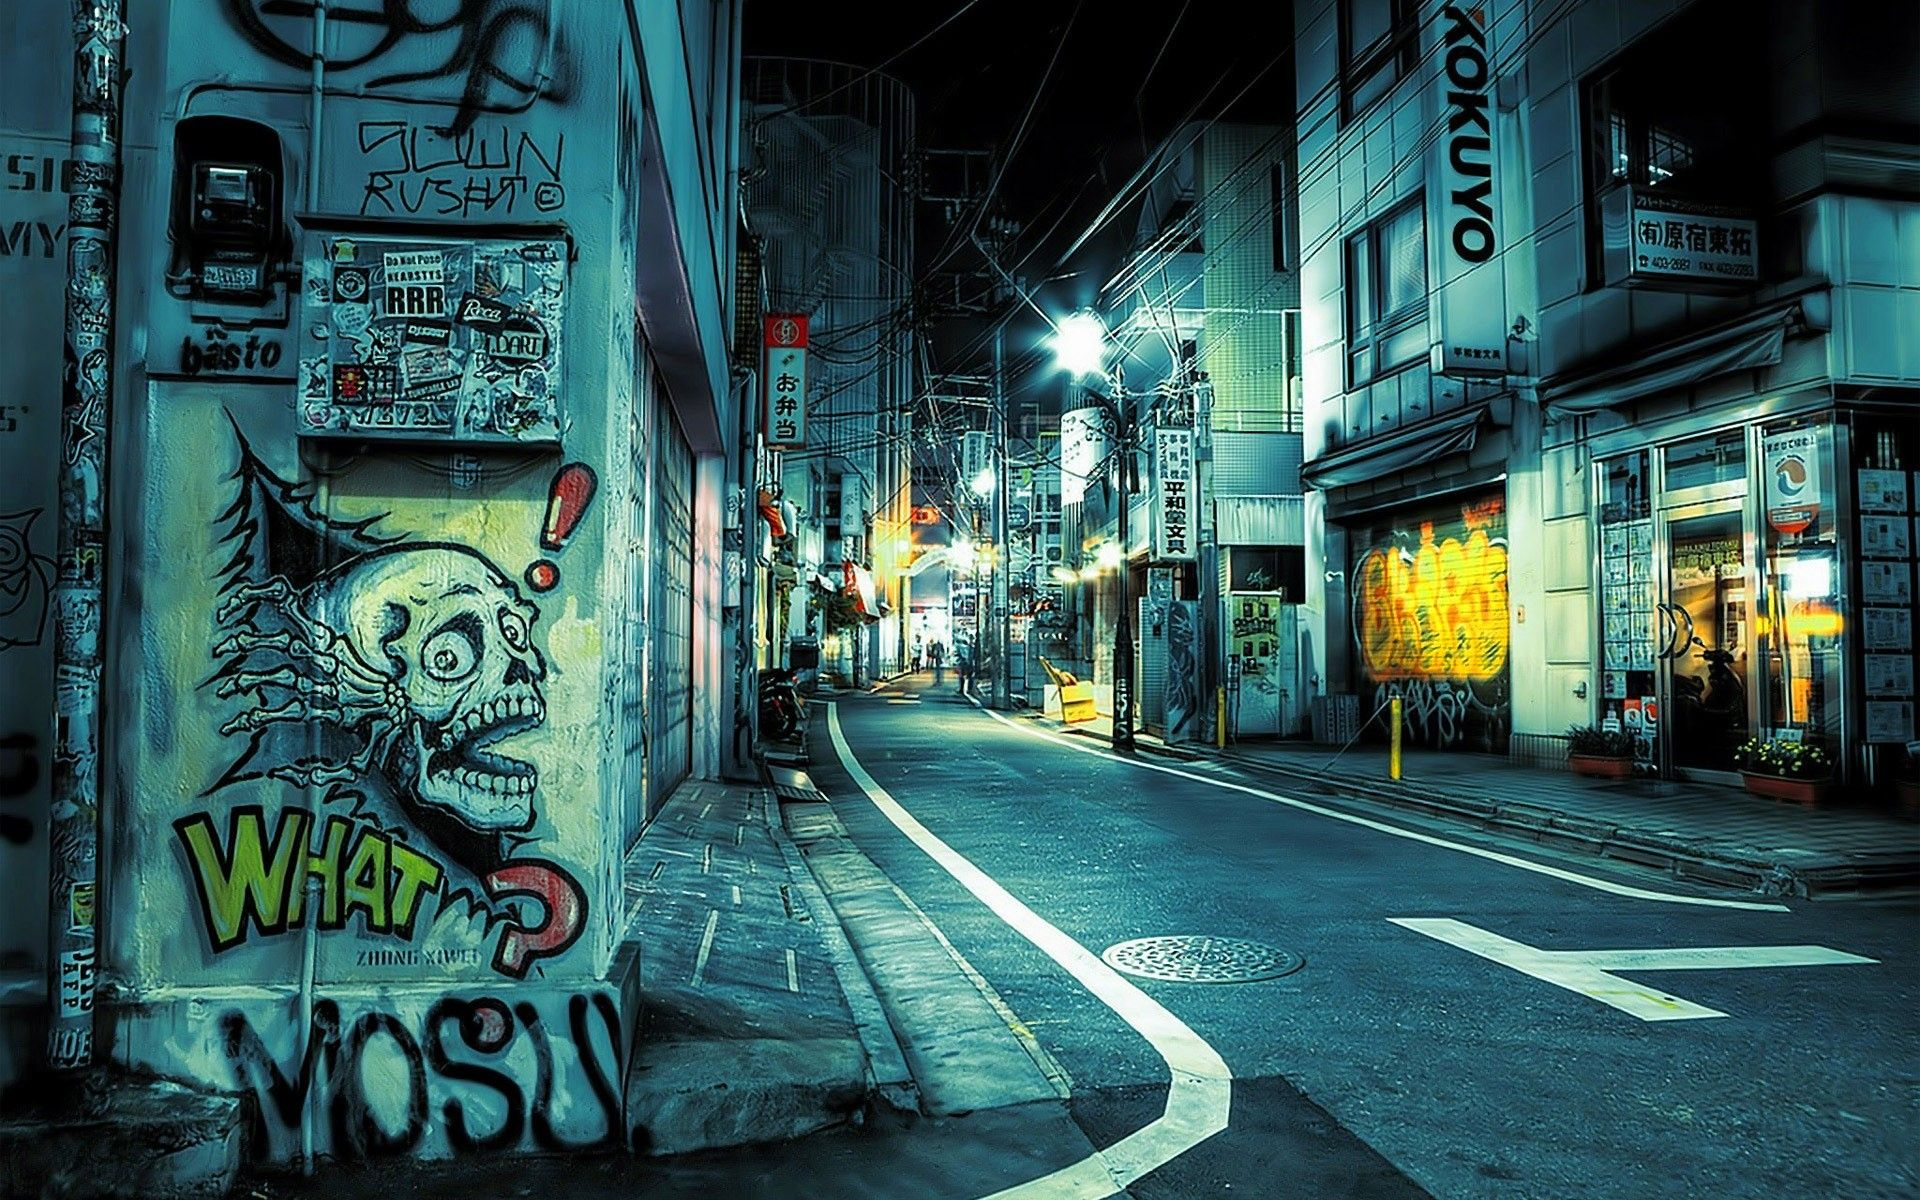 Tokyo Night Wallpaper Hd Resolution Street Graffiti Graffiti Wallpaper Street Art